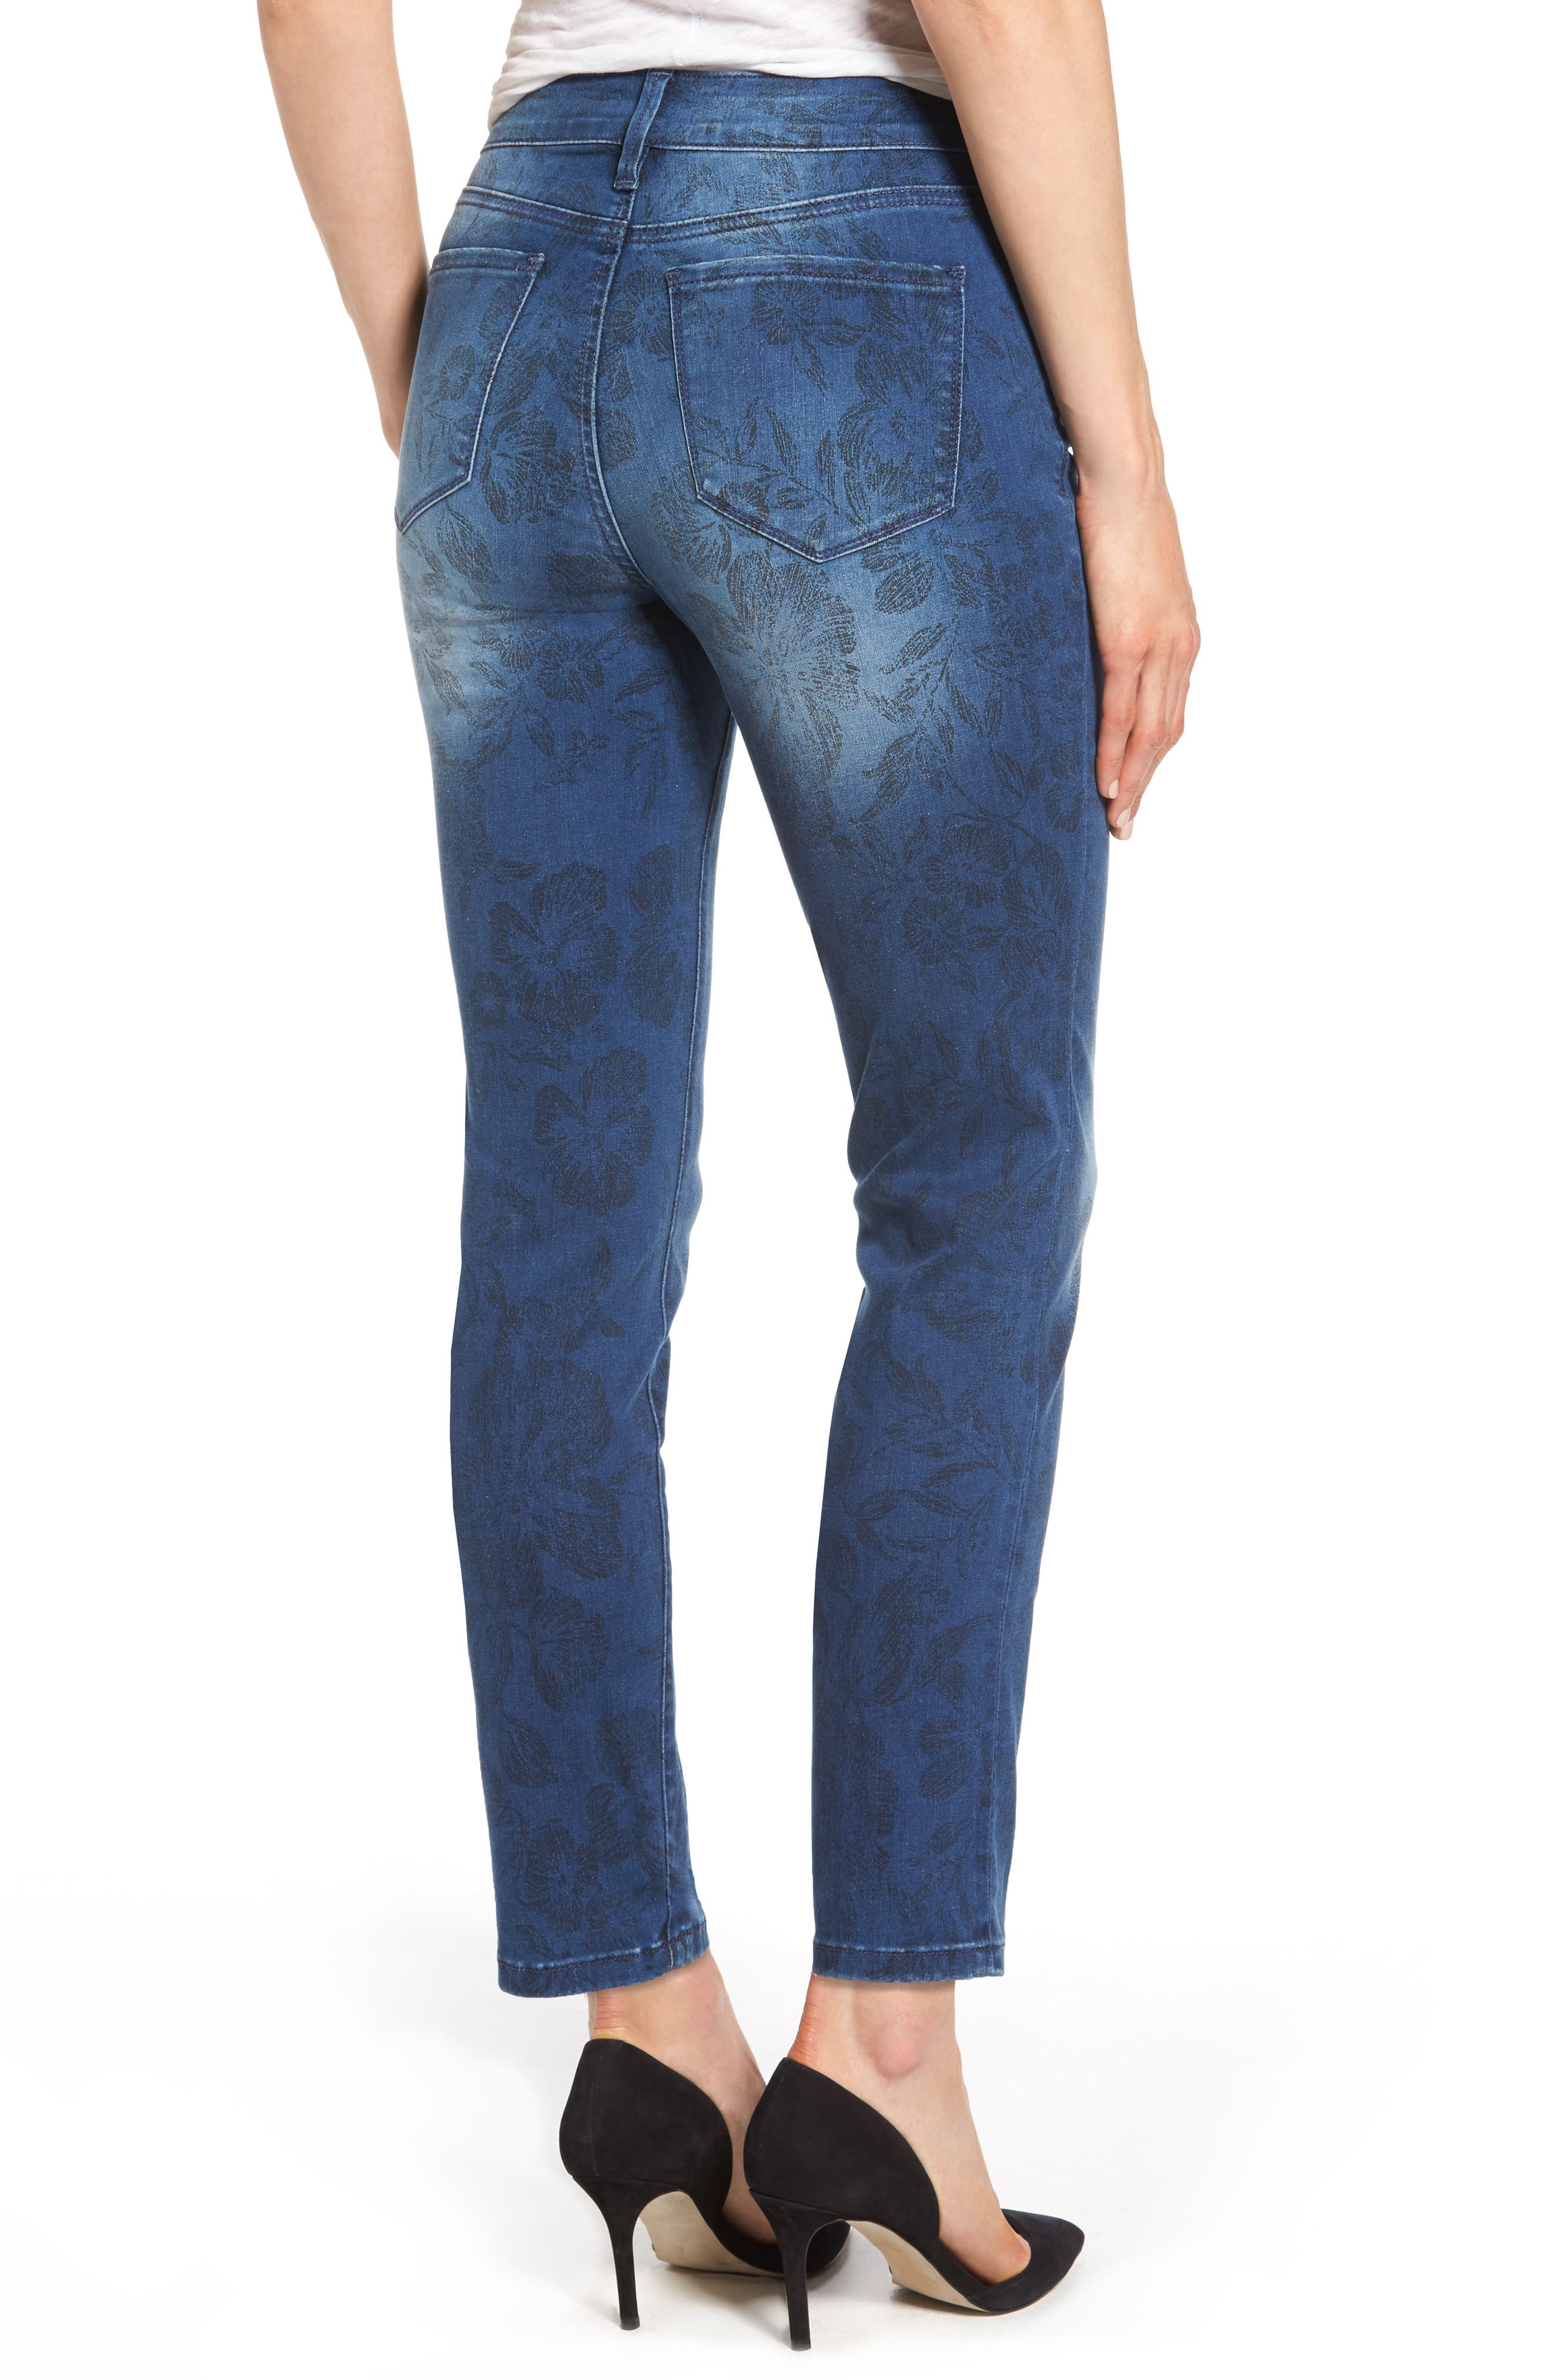 Alina Print Slim Ankle Jeans,                             Alternate thumbnail 2, color,                             Print